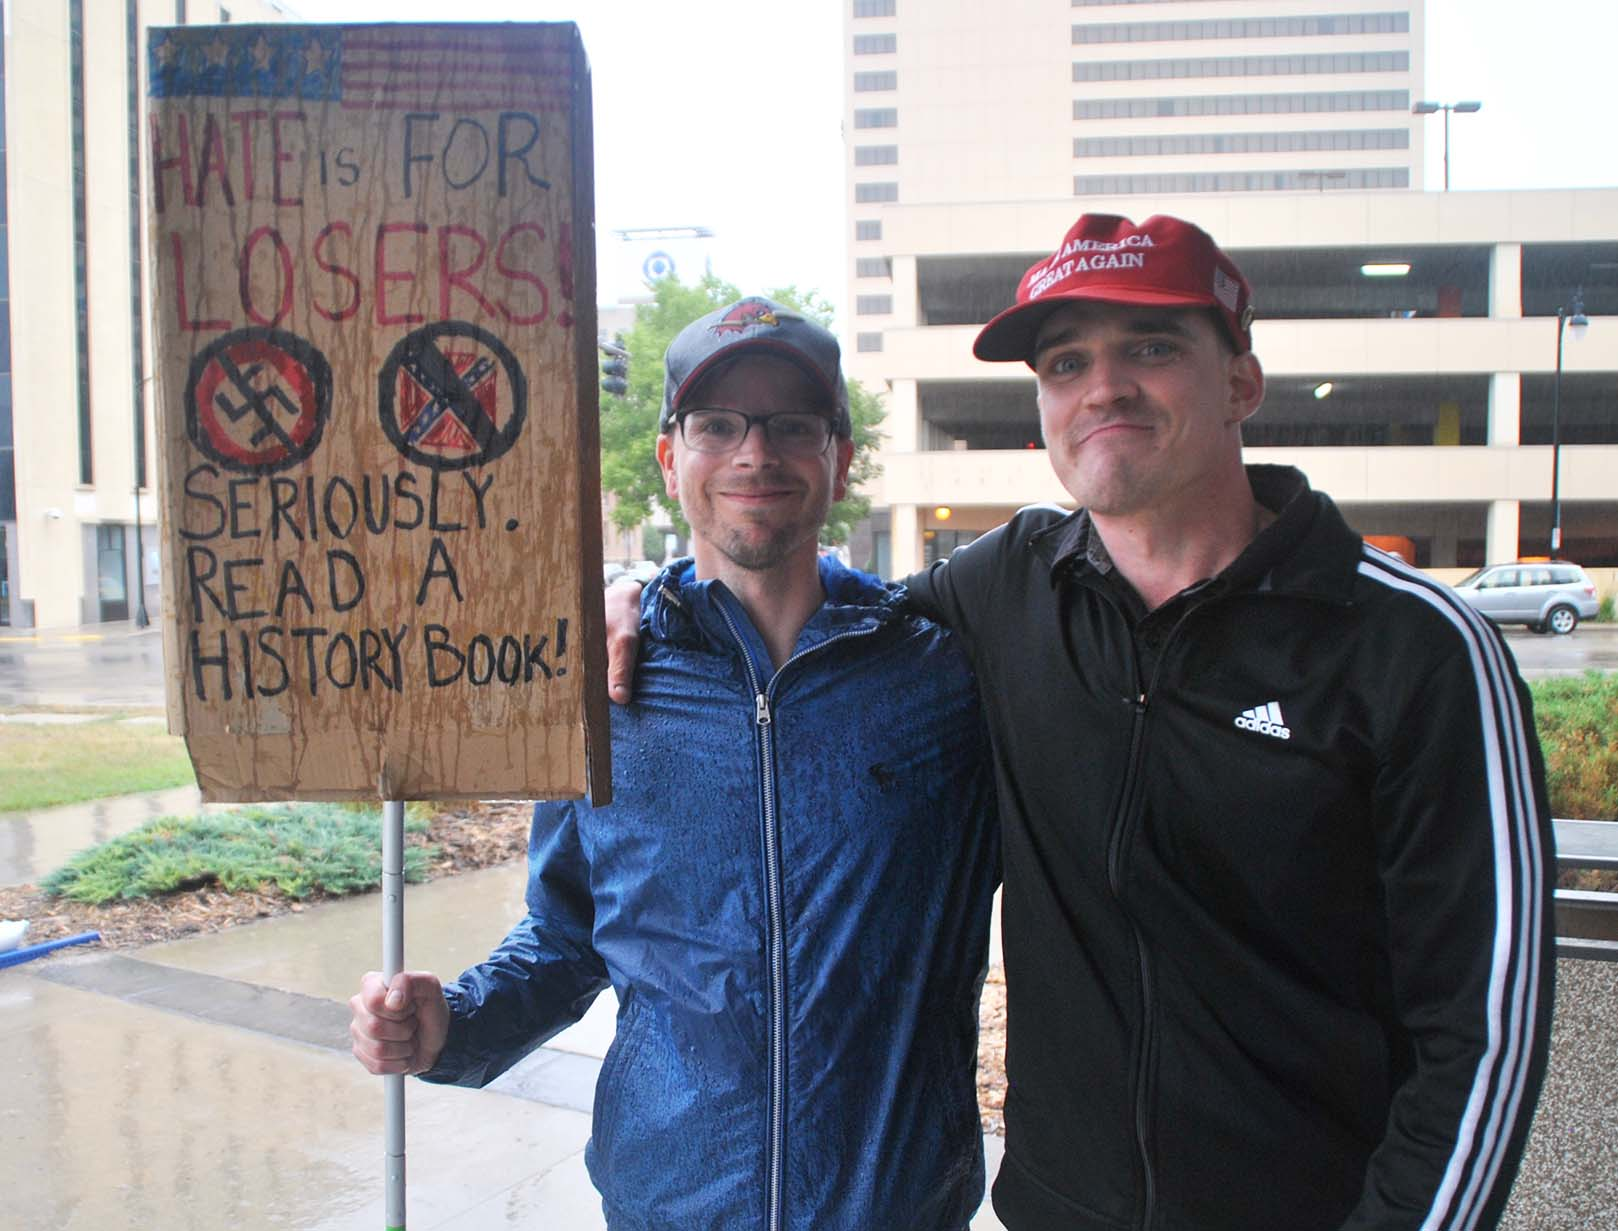 James Bergman and Pete Tefft at the North Dakota United Against Hate rally - photo by C.S. Hagen